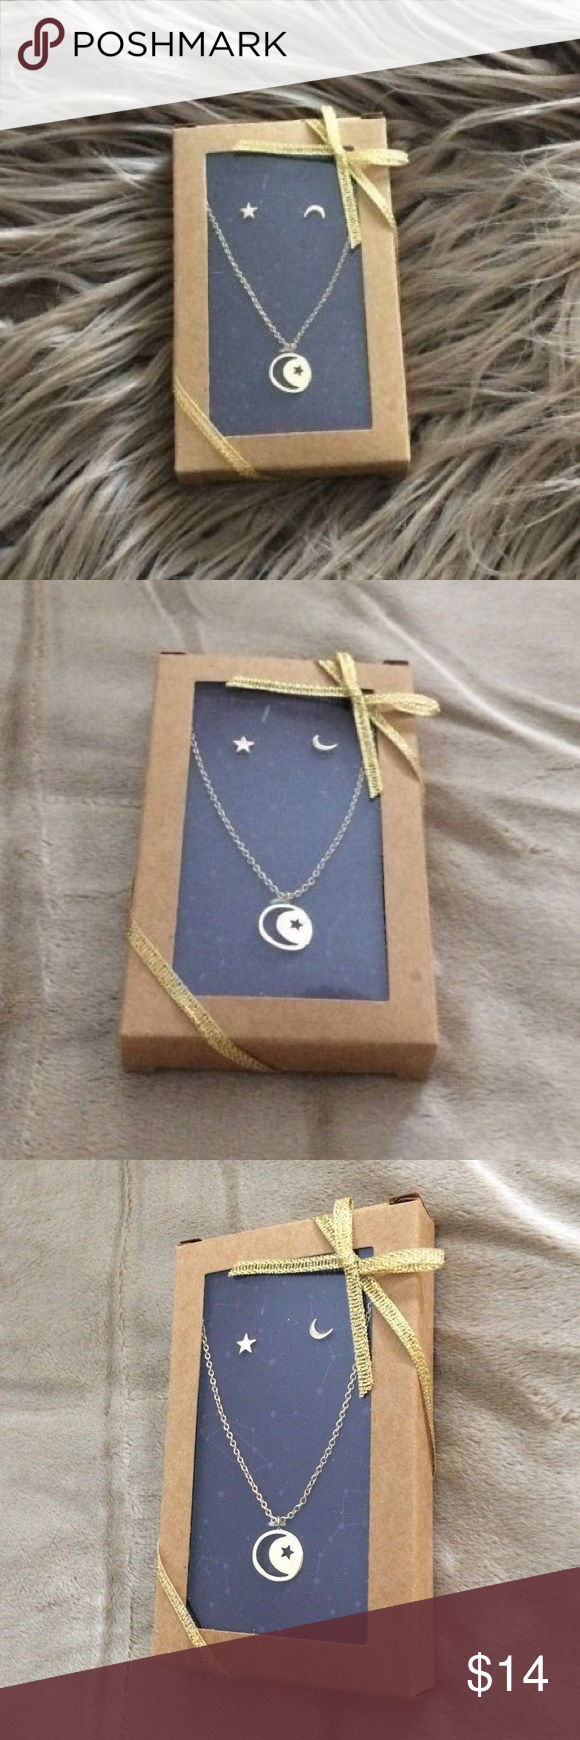 ☀️⬇️💰 Crescent Moon Star Necklace Earring Set NWT   Star ...